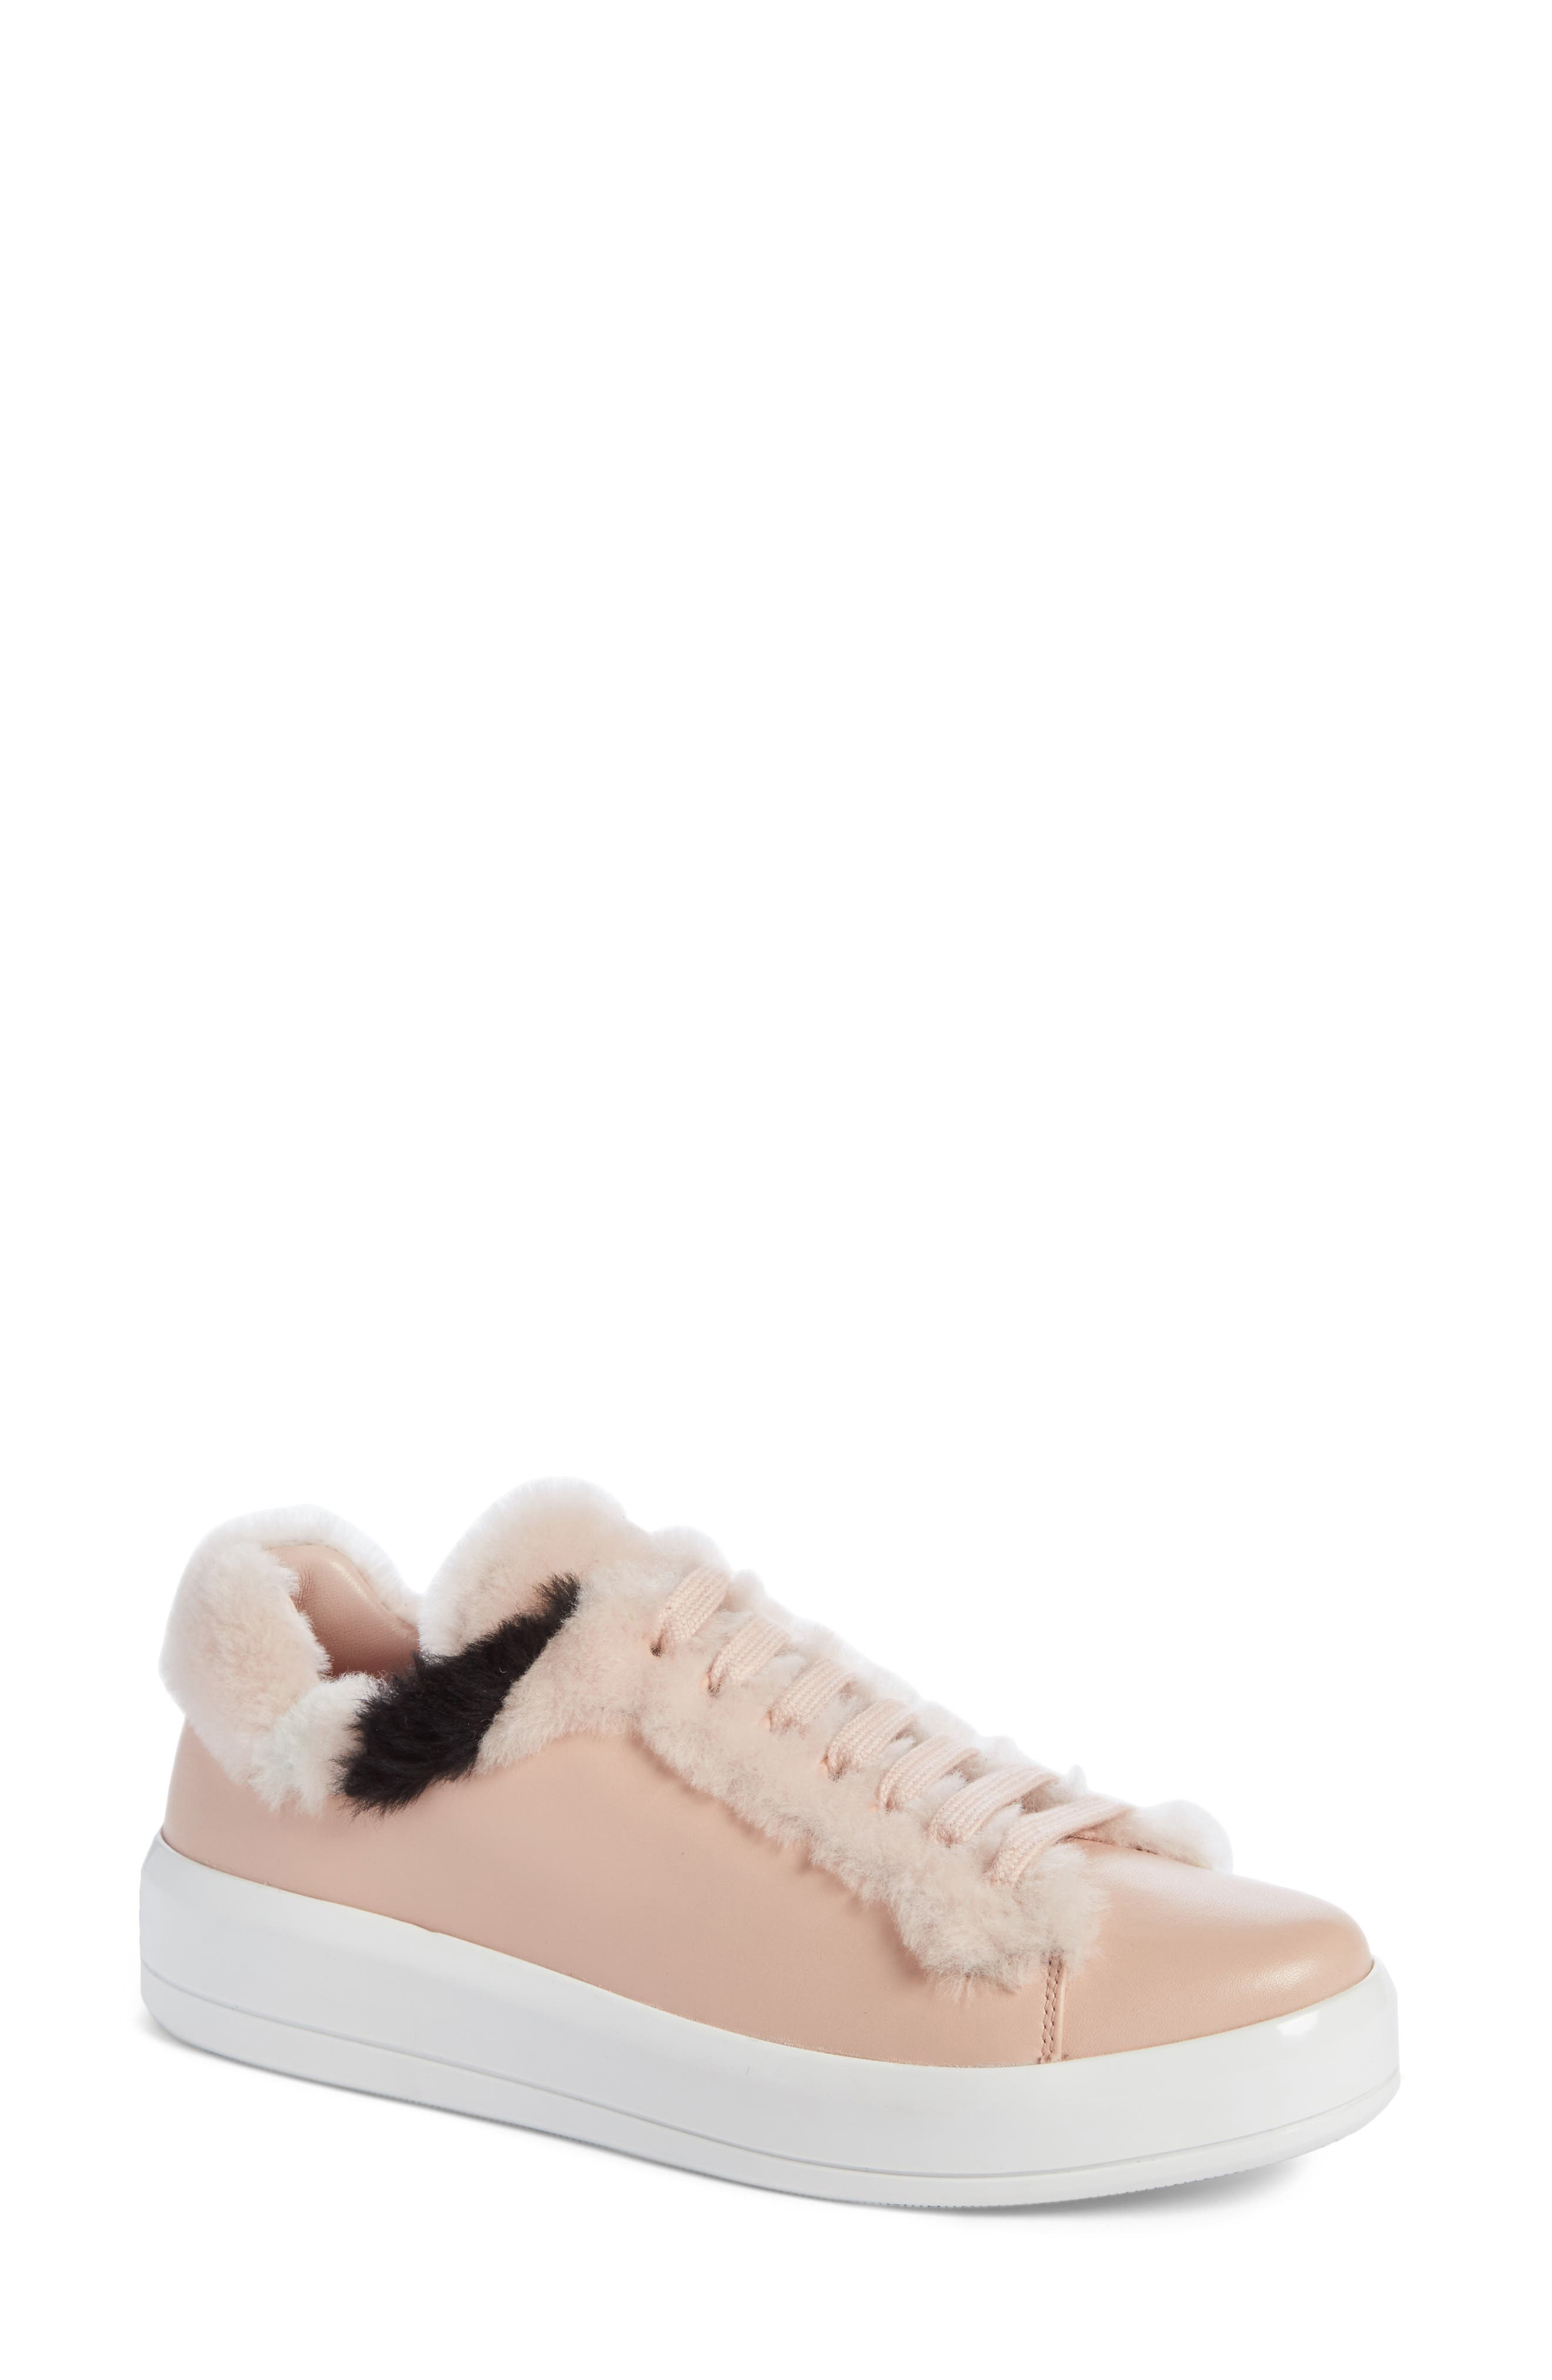 Genuine Shearling Trim Platform Sneaker,                         Main,                         color, Pink Leather